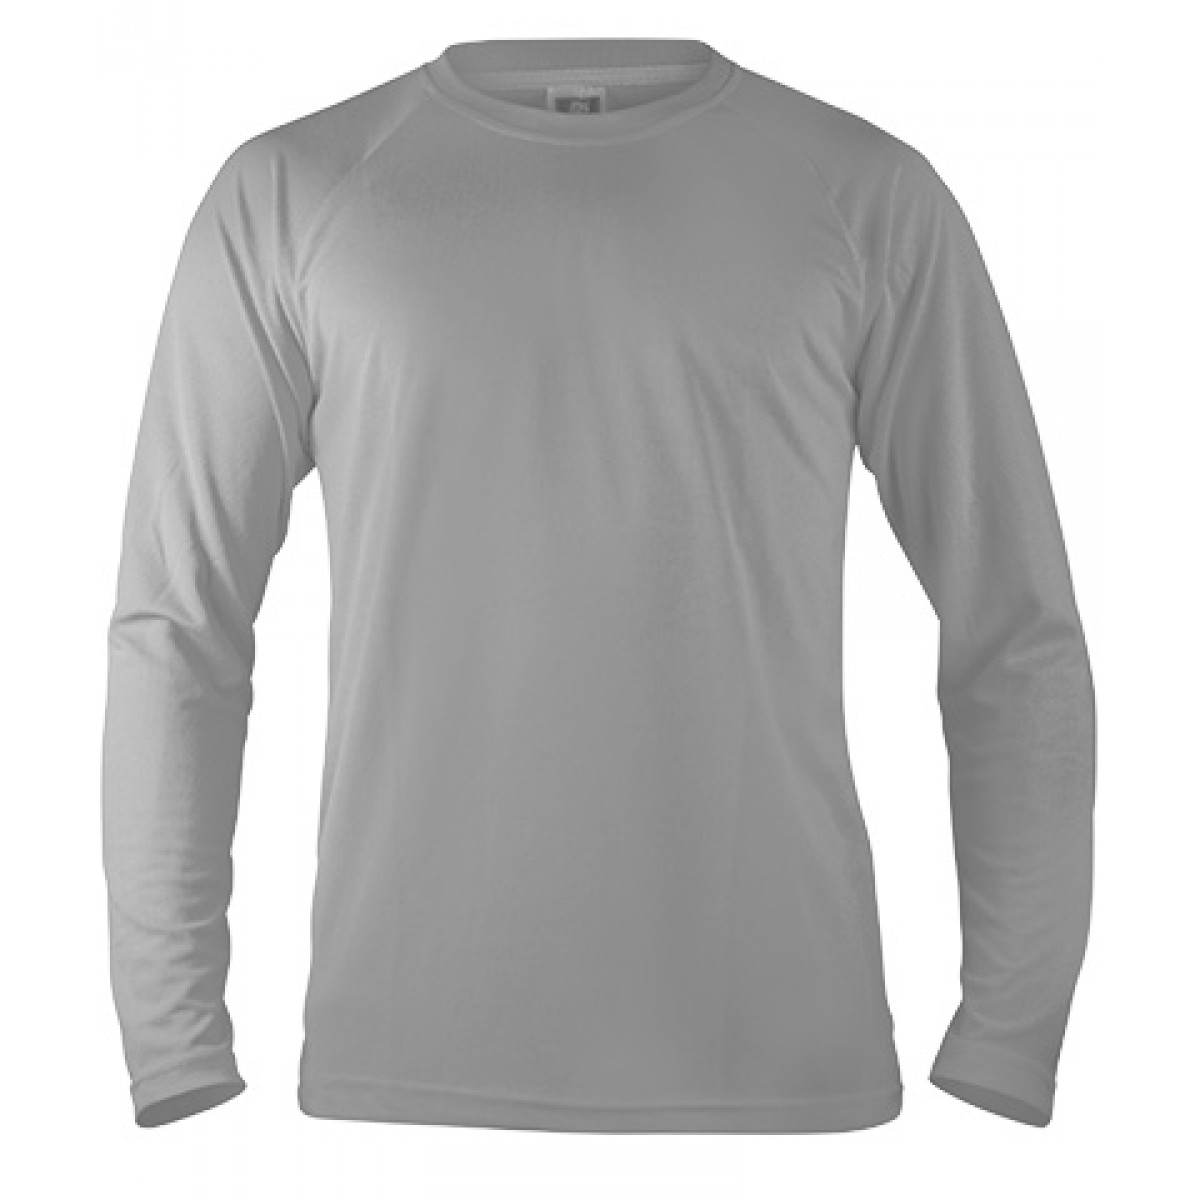 Long Sleeve Performance -Gray -XS